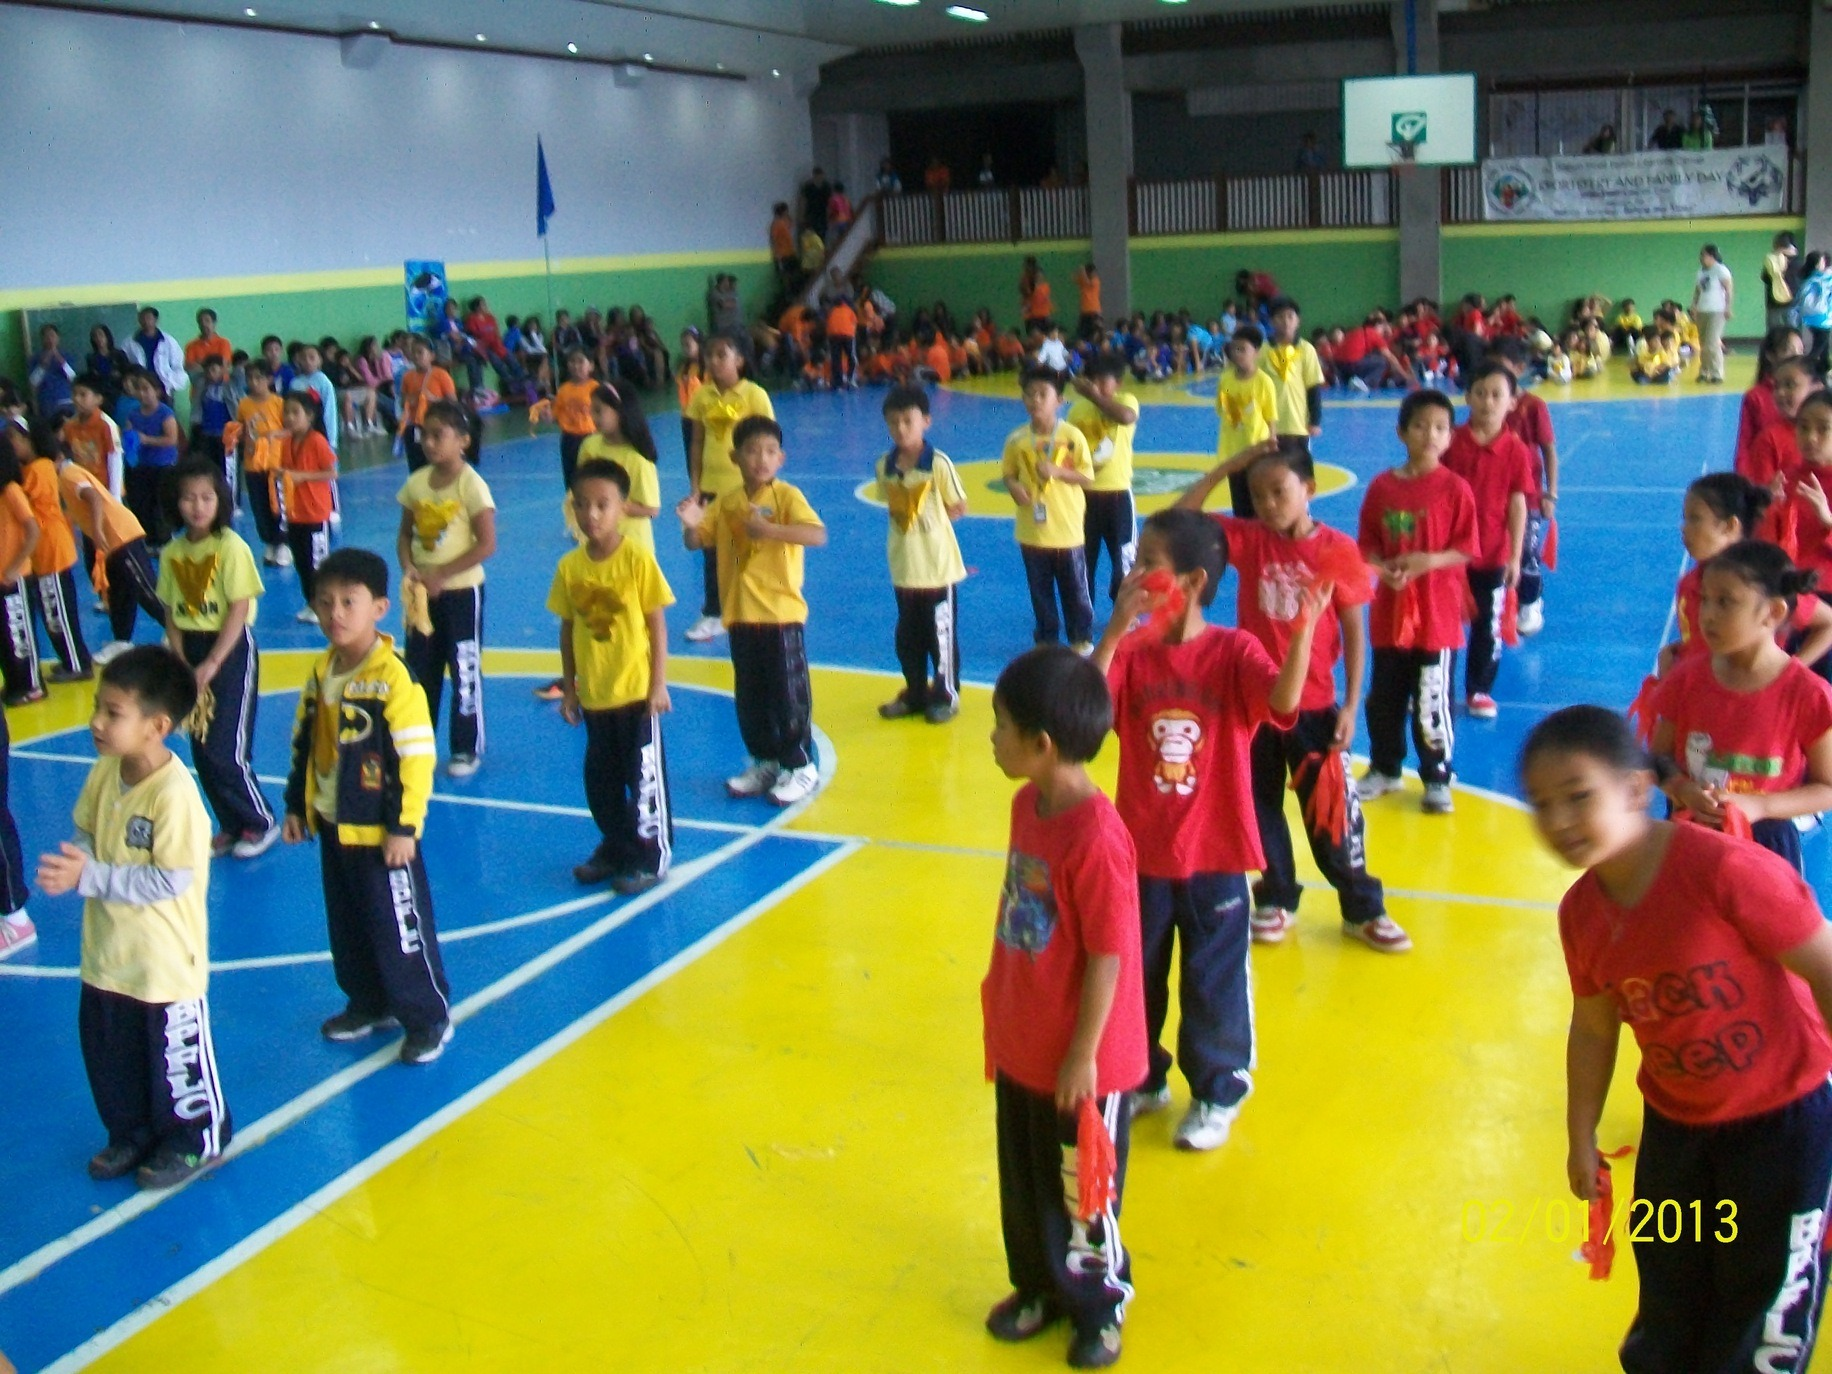 Sportsfest and Family Day